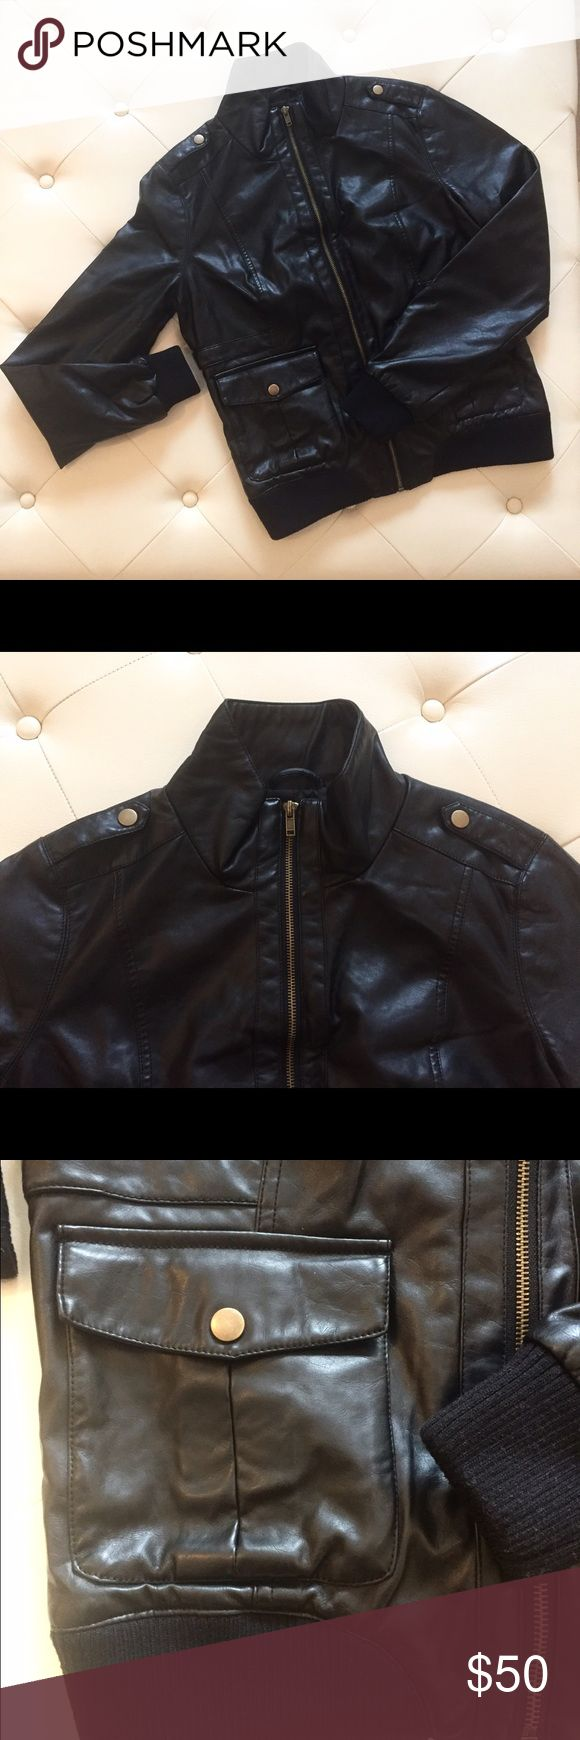 Jack by BB Dakota Leather Jacket NWOT, comes from a pet-free, smoke free home. Runs small (I'm usually a S or M but sized up). Jack by BB Dakota Jackets & Coats Utility Jackets